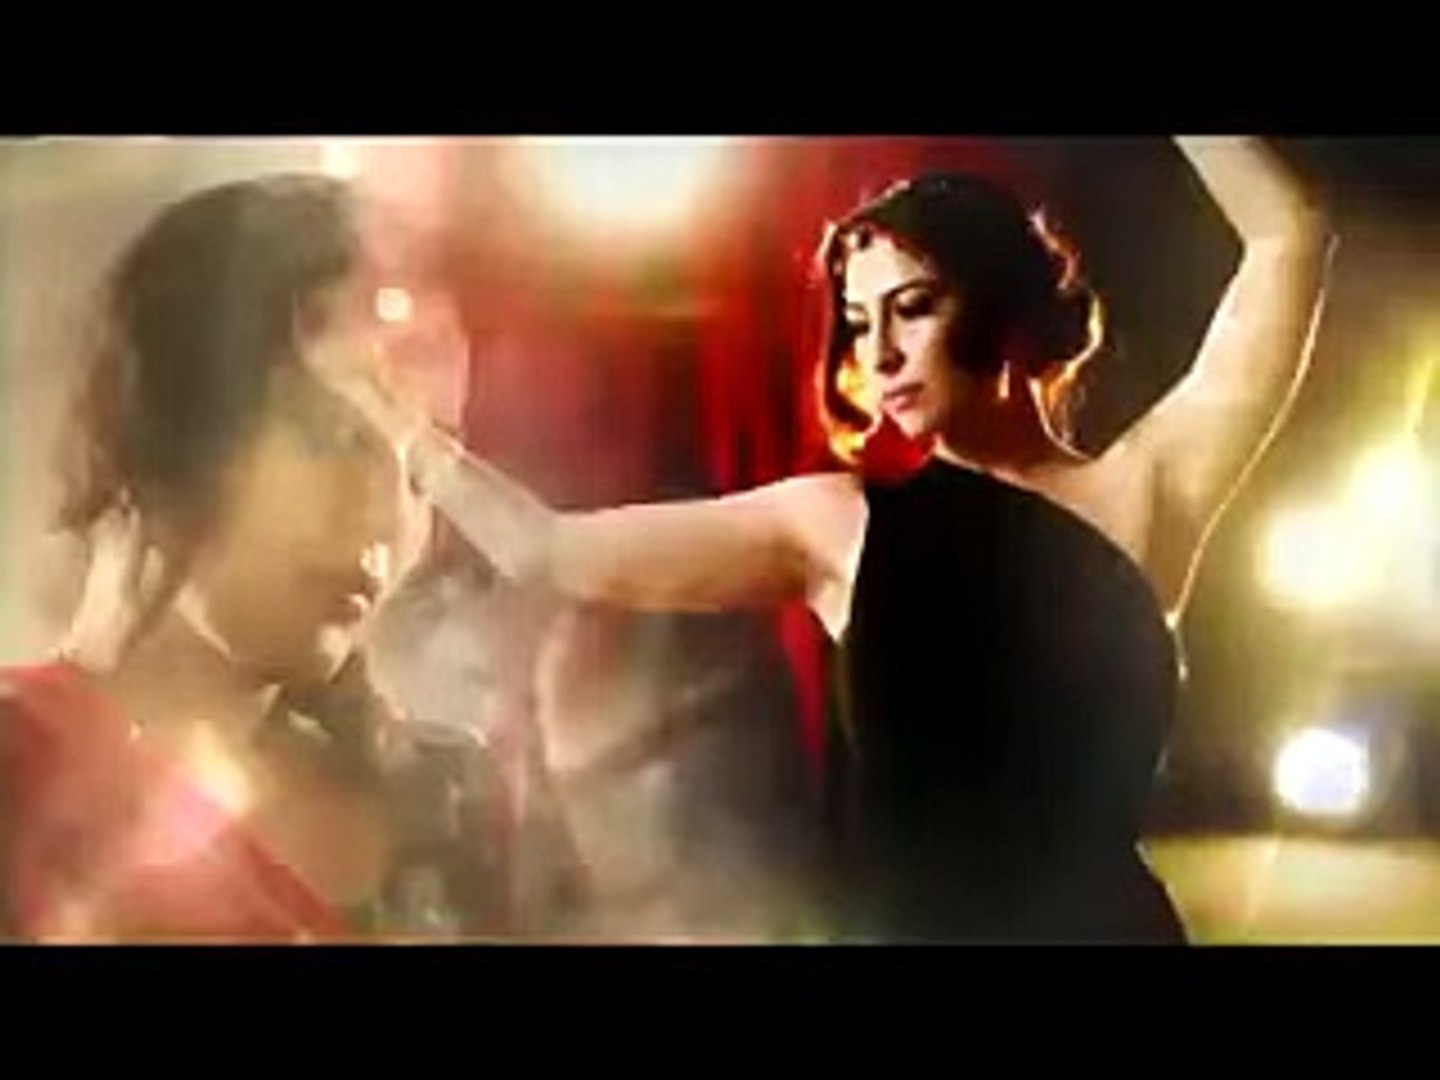 Mehram Dilan De Mahi Meesha Shafi Manto The Film top songs best songs new songs upcoming songs lates